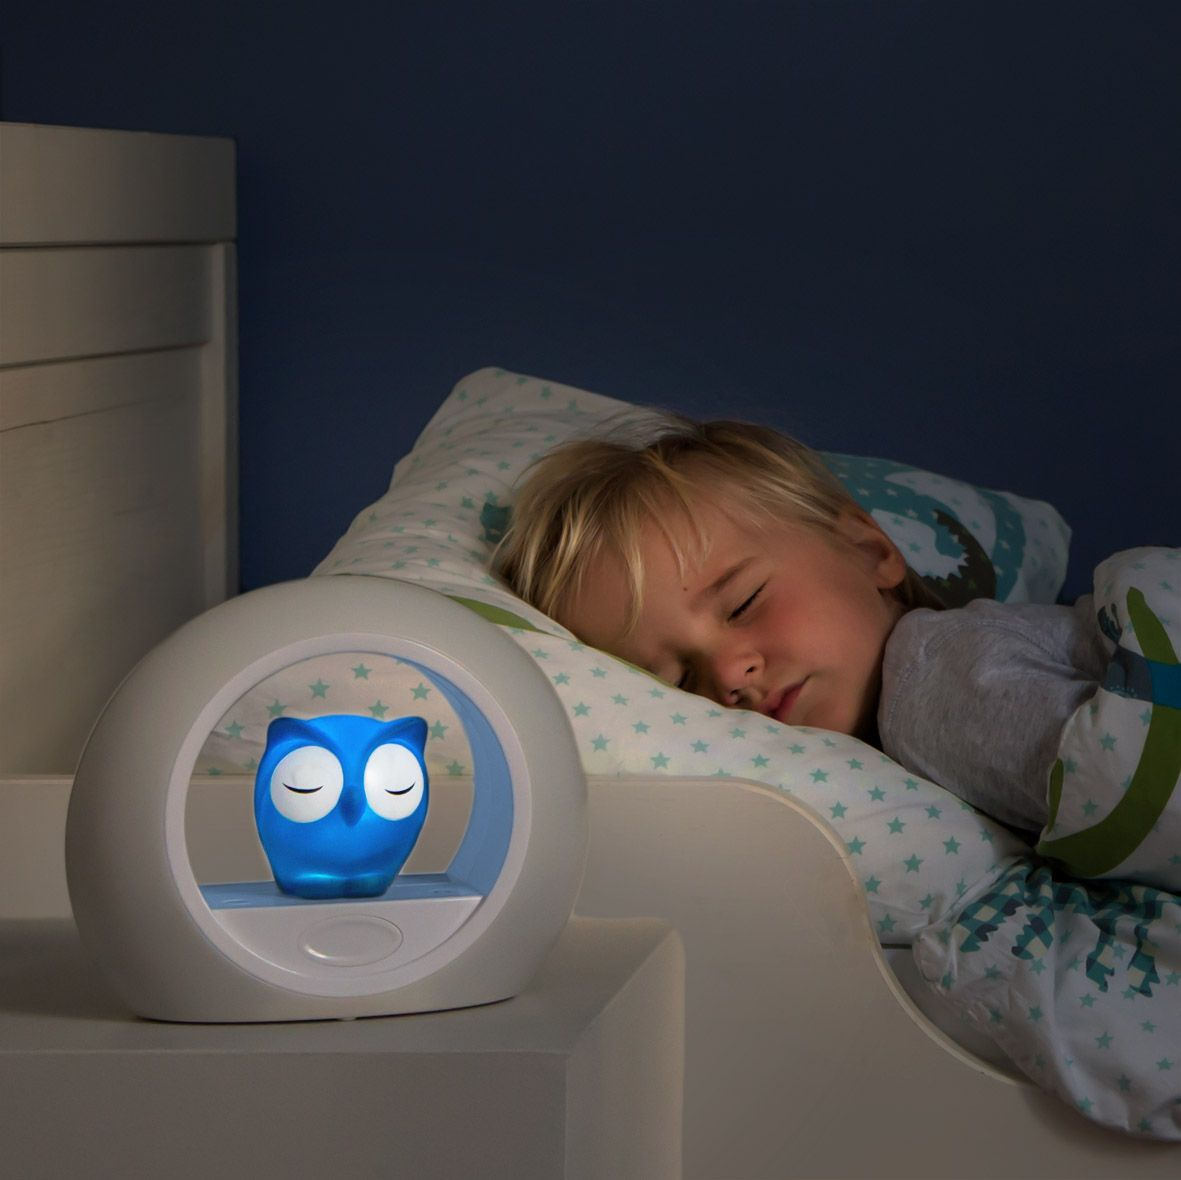 How To Keep Your Child In Their Own Bed Project Junior Night Light Kids Toddler Night Light Kids Night